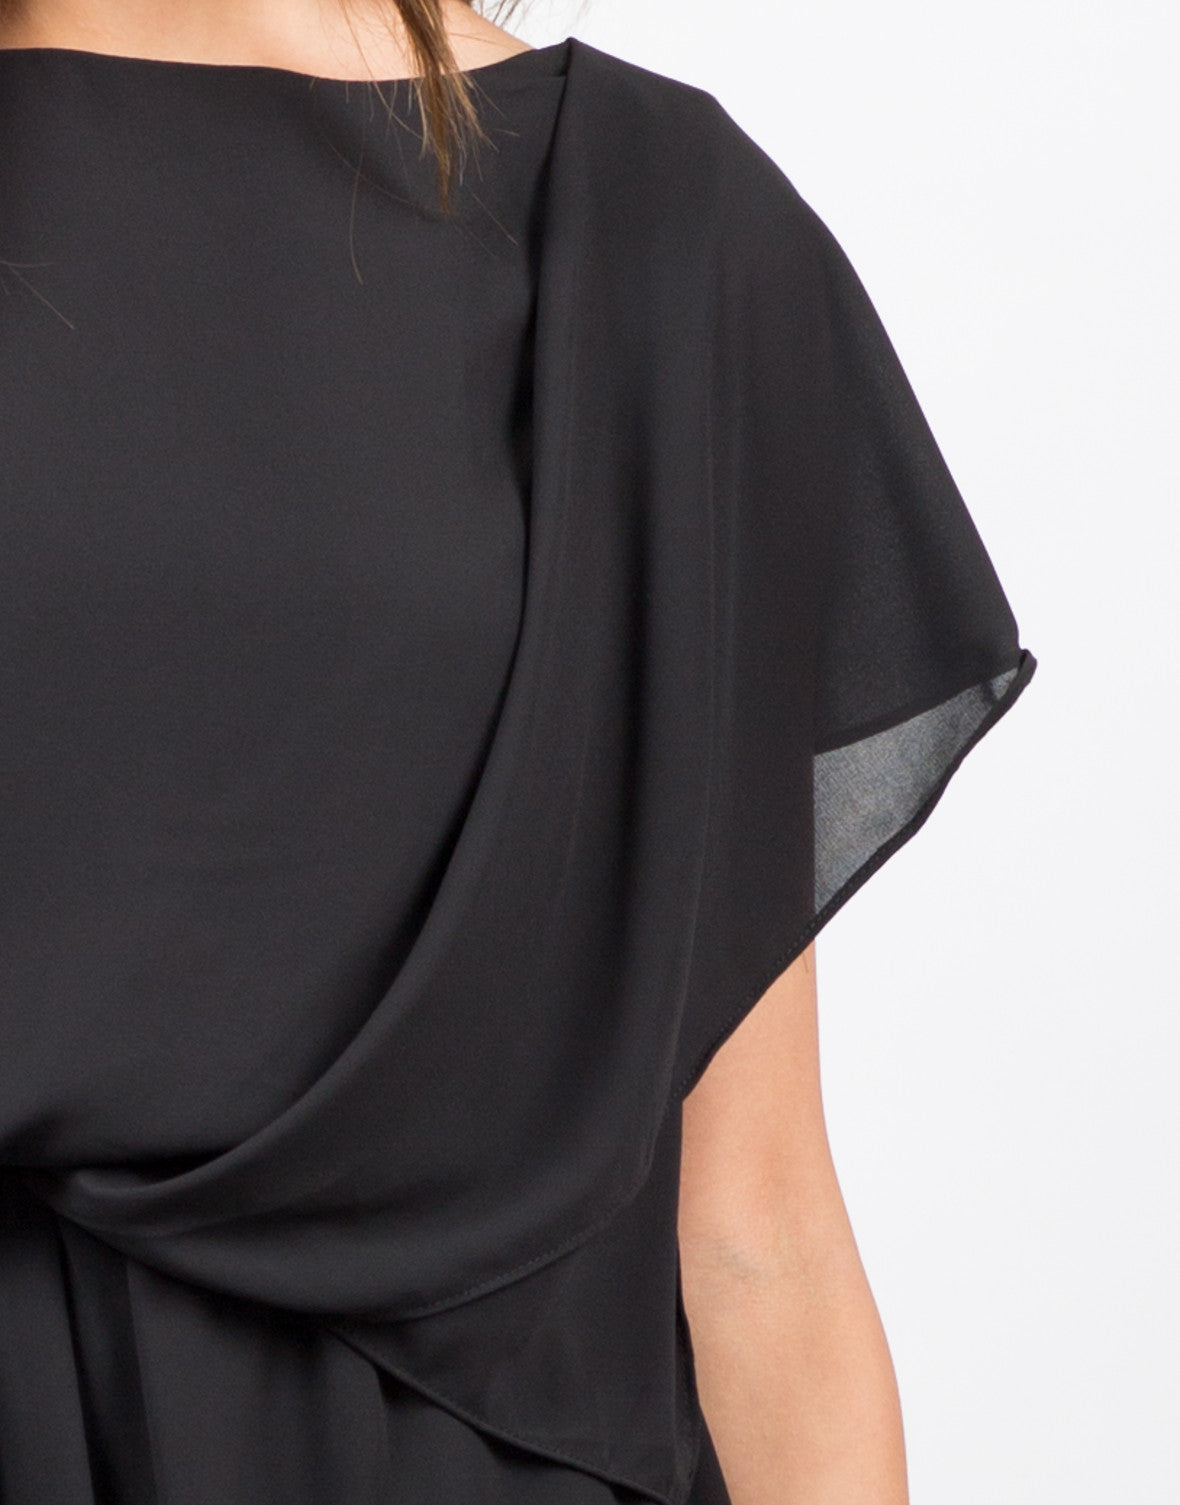 Detail of Drapey Chiffon Dress